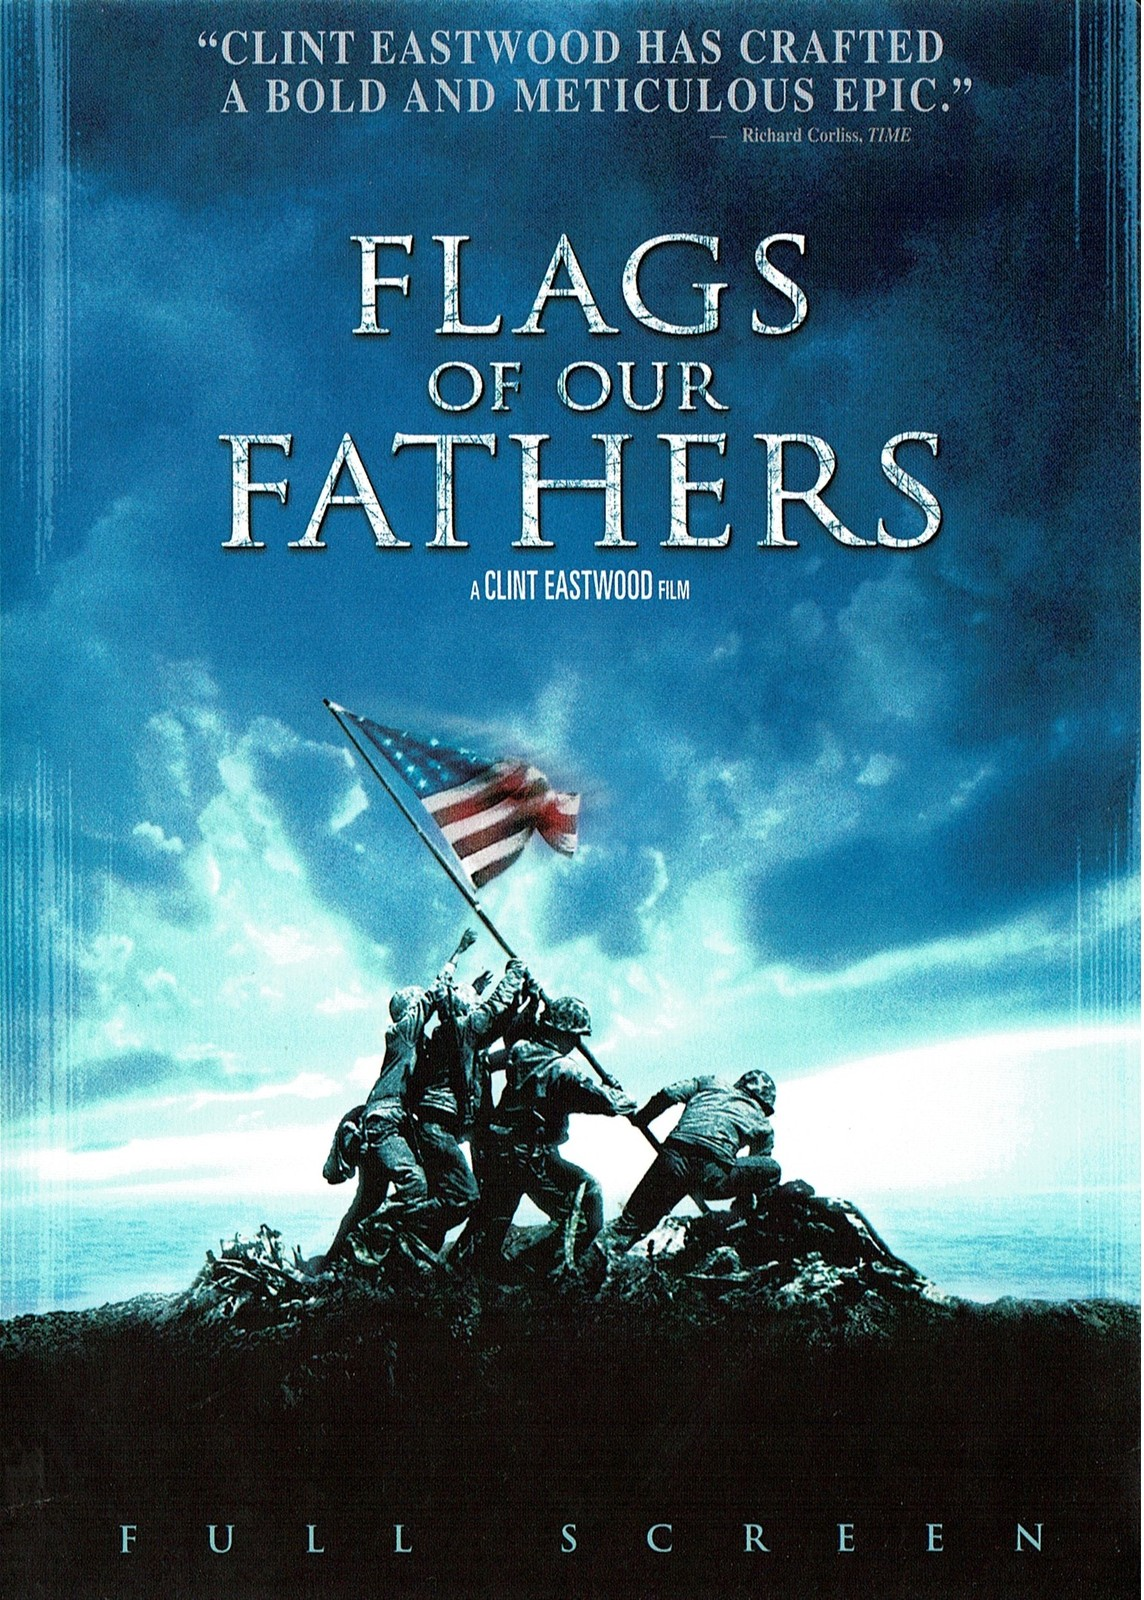 Flags of Our Fathers, DVD, 2007, Clint Eastwood